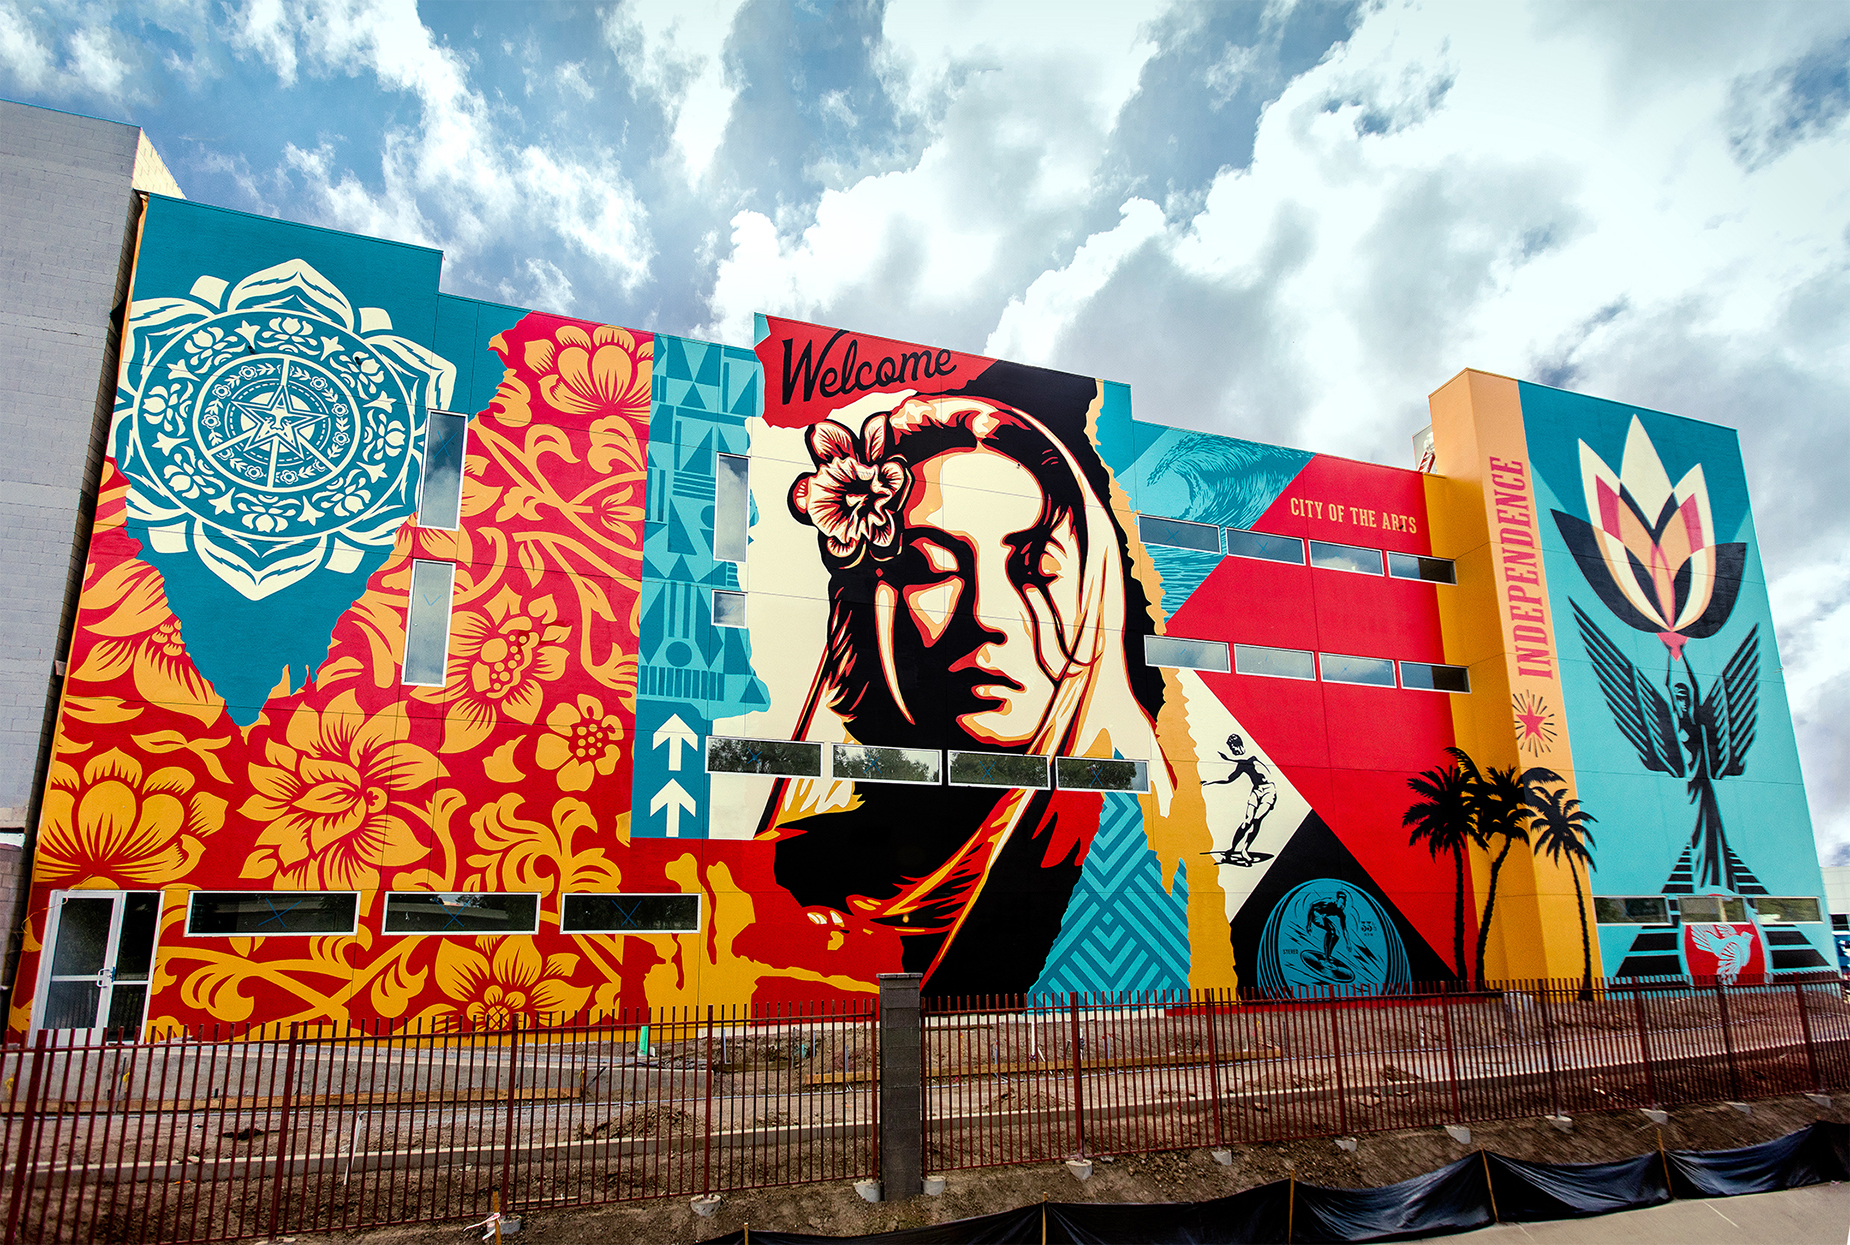 Welcome Home Mural by Shepard Fairey, at Costa Mesa, 2017. Image courtesy of Jon Furlong.